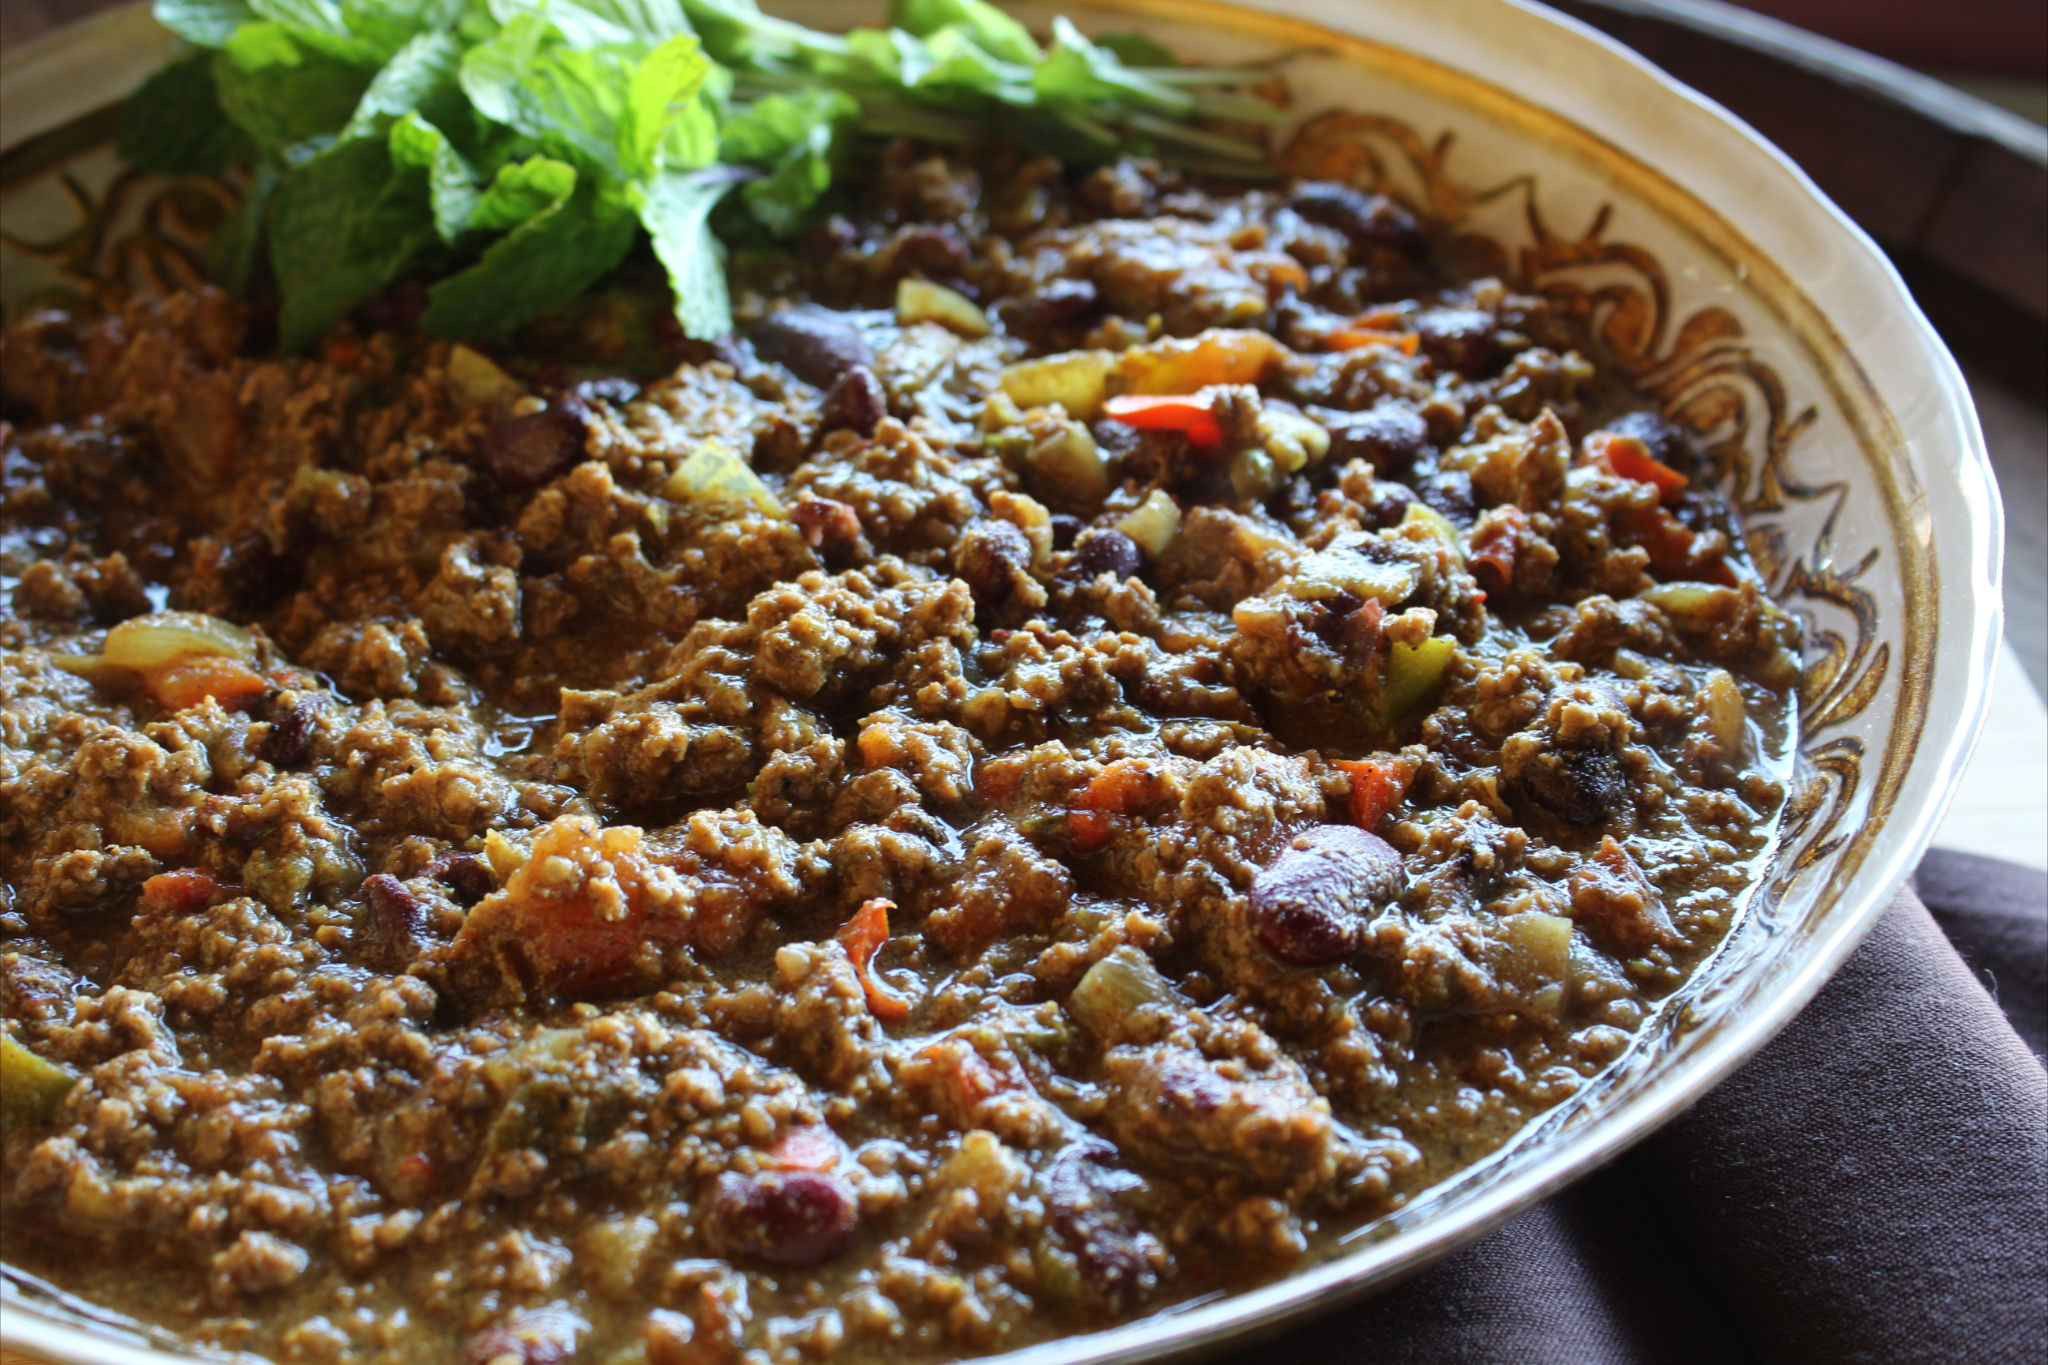 Home » General Recipes » Lamb & Kidney Bean Chili